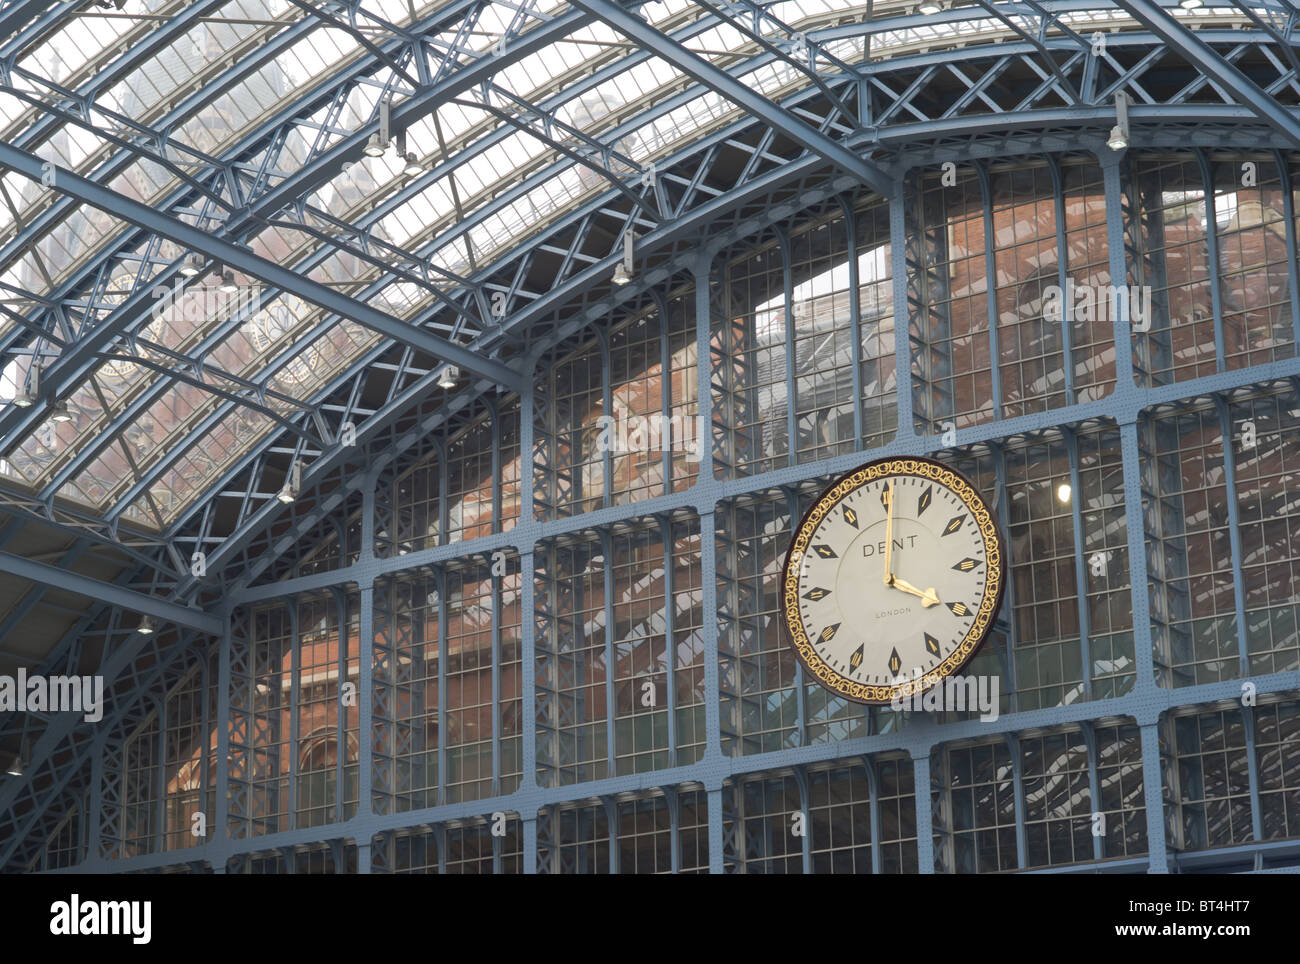 Train shed and station clock in St. Pancras station in London, England, UK. - Stock Image